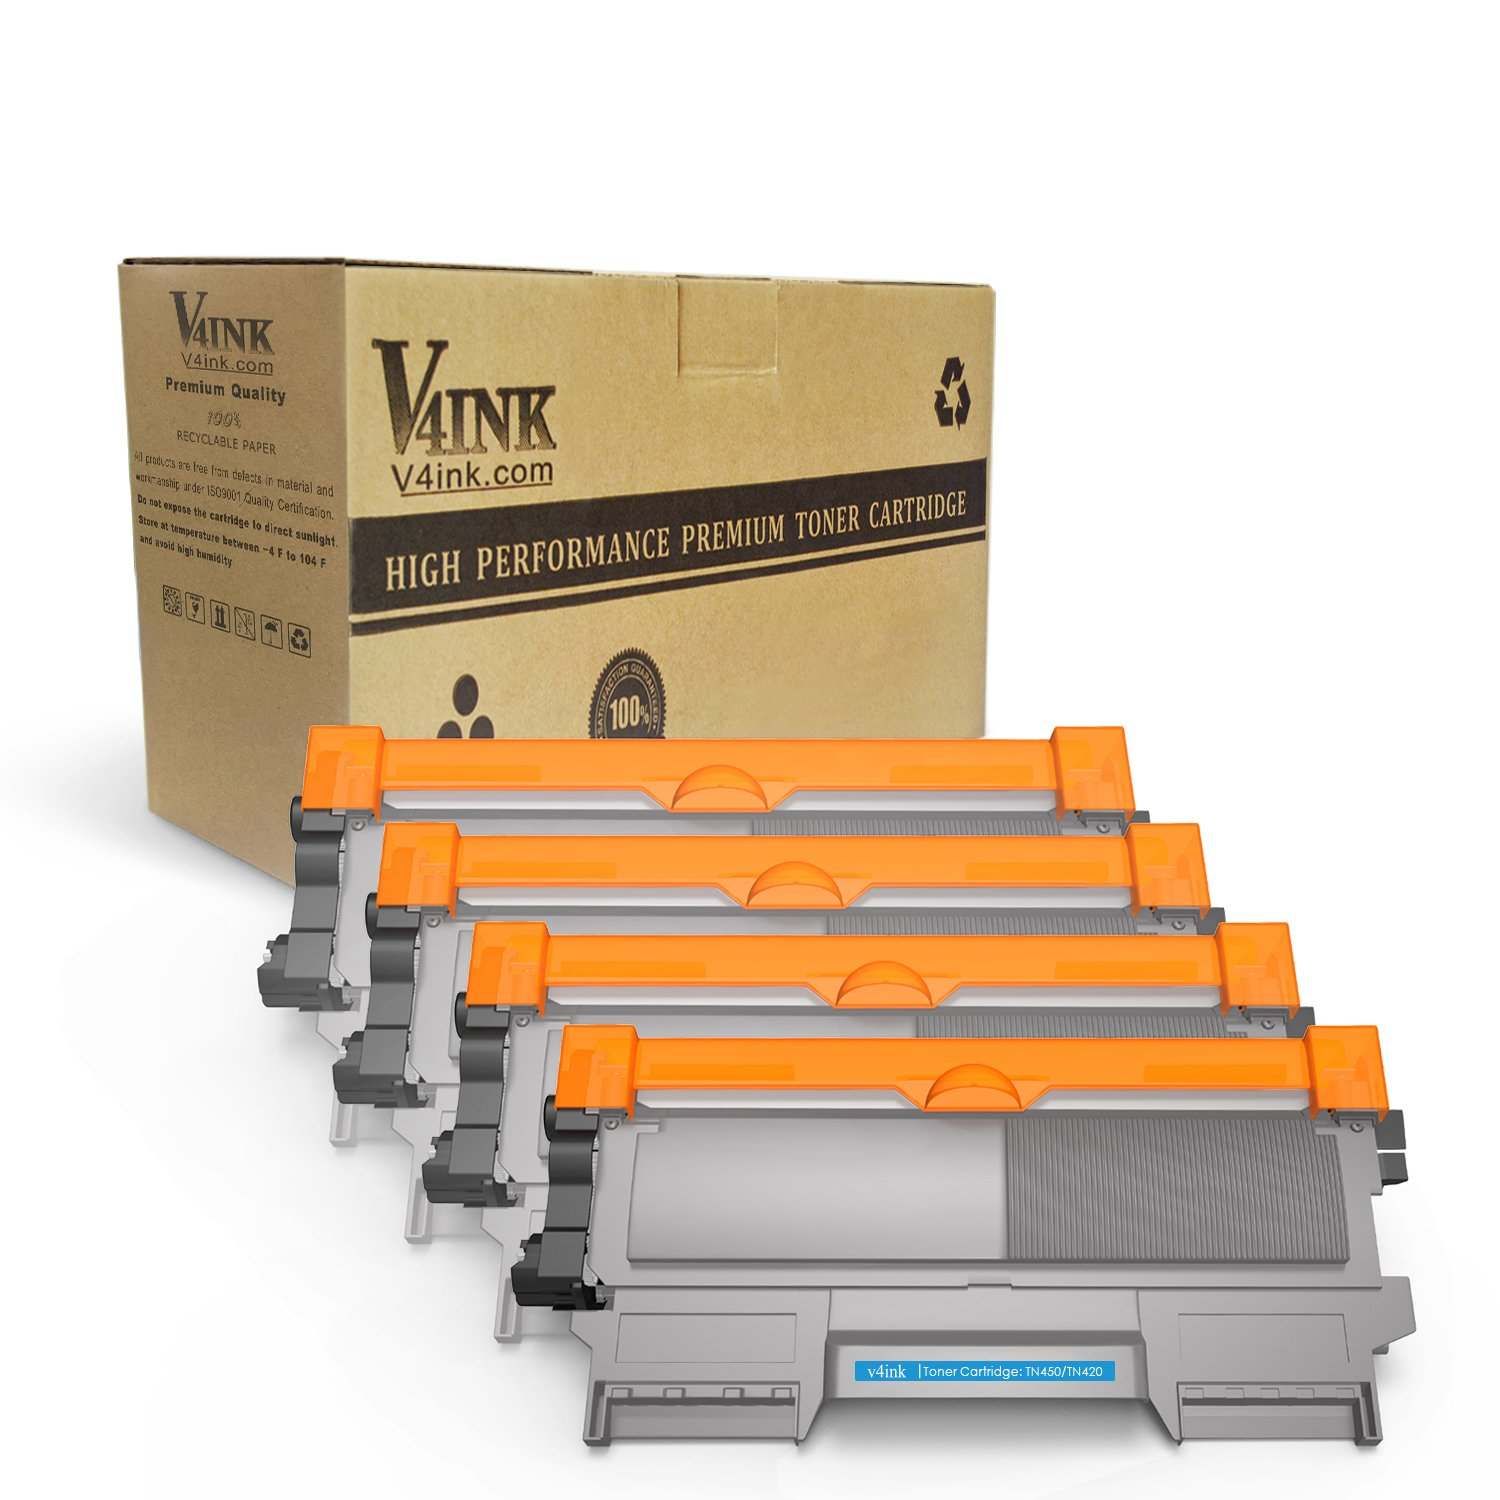 v4ink New Compatible Toner Cartridge Replacement for Brother TN450 TN-450 TN-420 for Use with HL-2270dw HL-2280dw HL-2240d MFC-7360n MFC-7860dw Series Printer, 4 Pack Enhanced Version